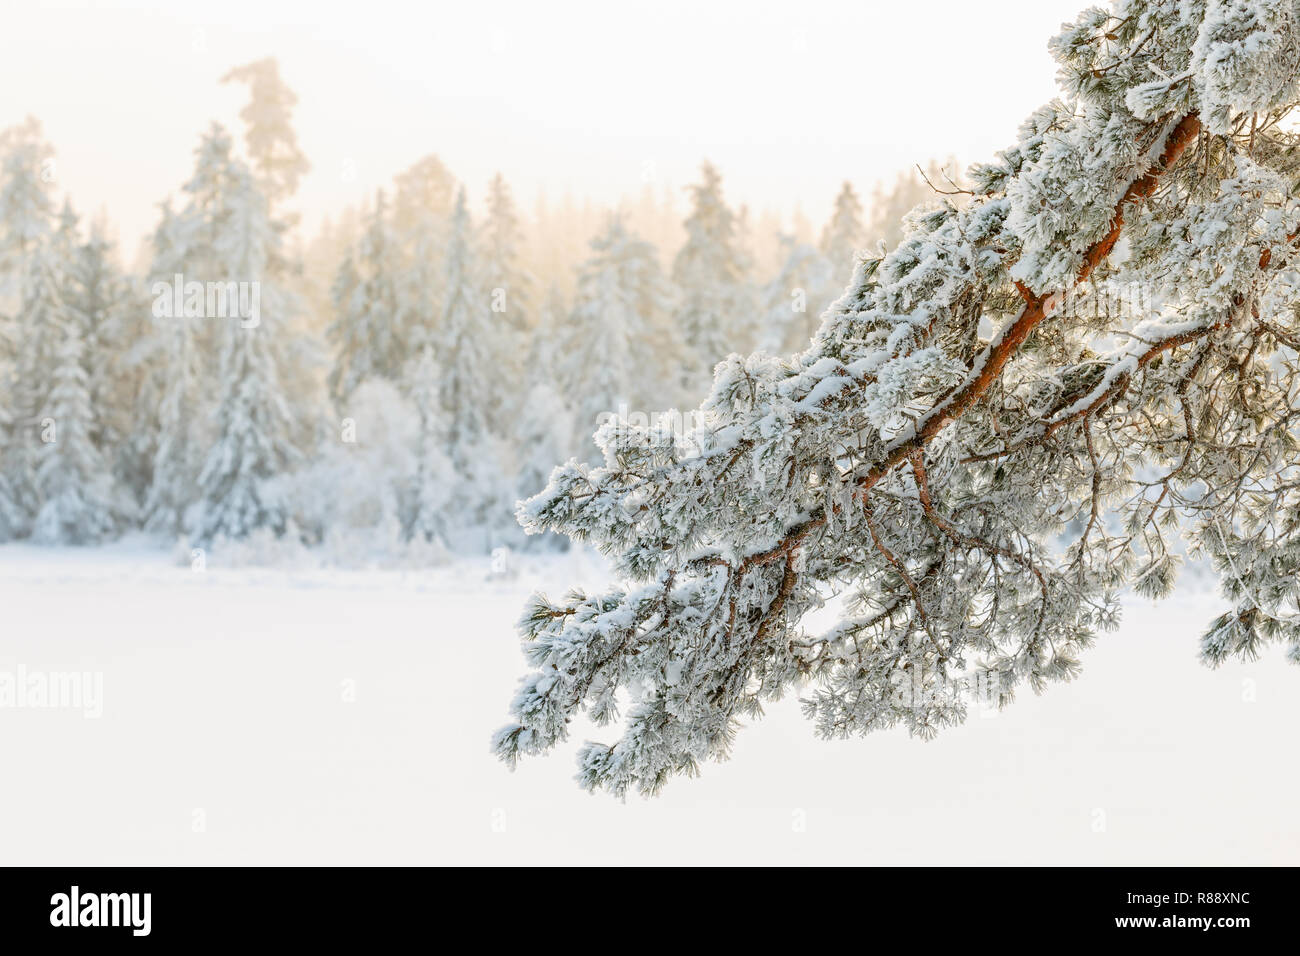 Pine tree branch with frost in a winter landscape - Stock Image